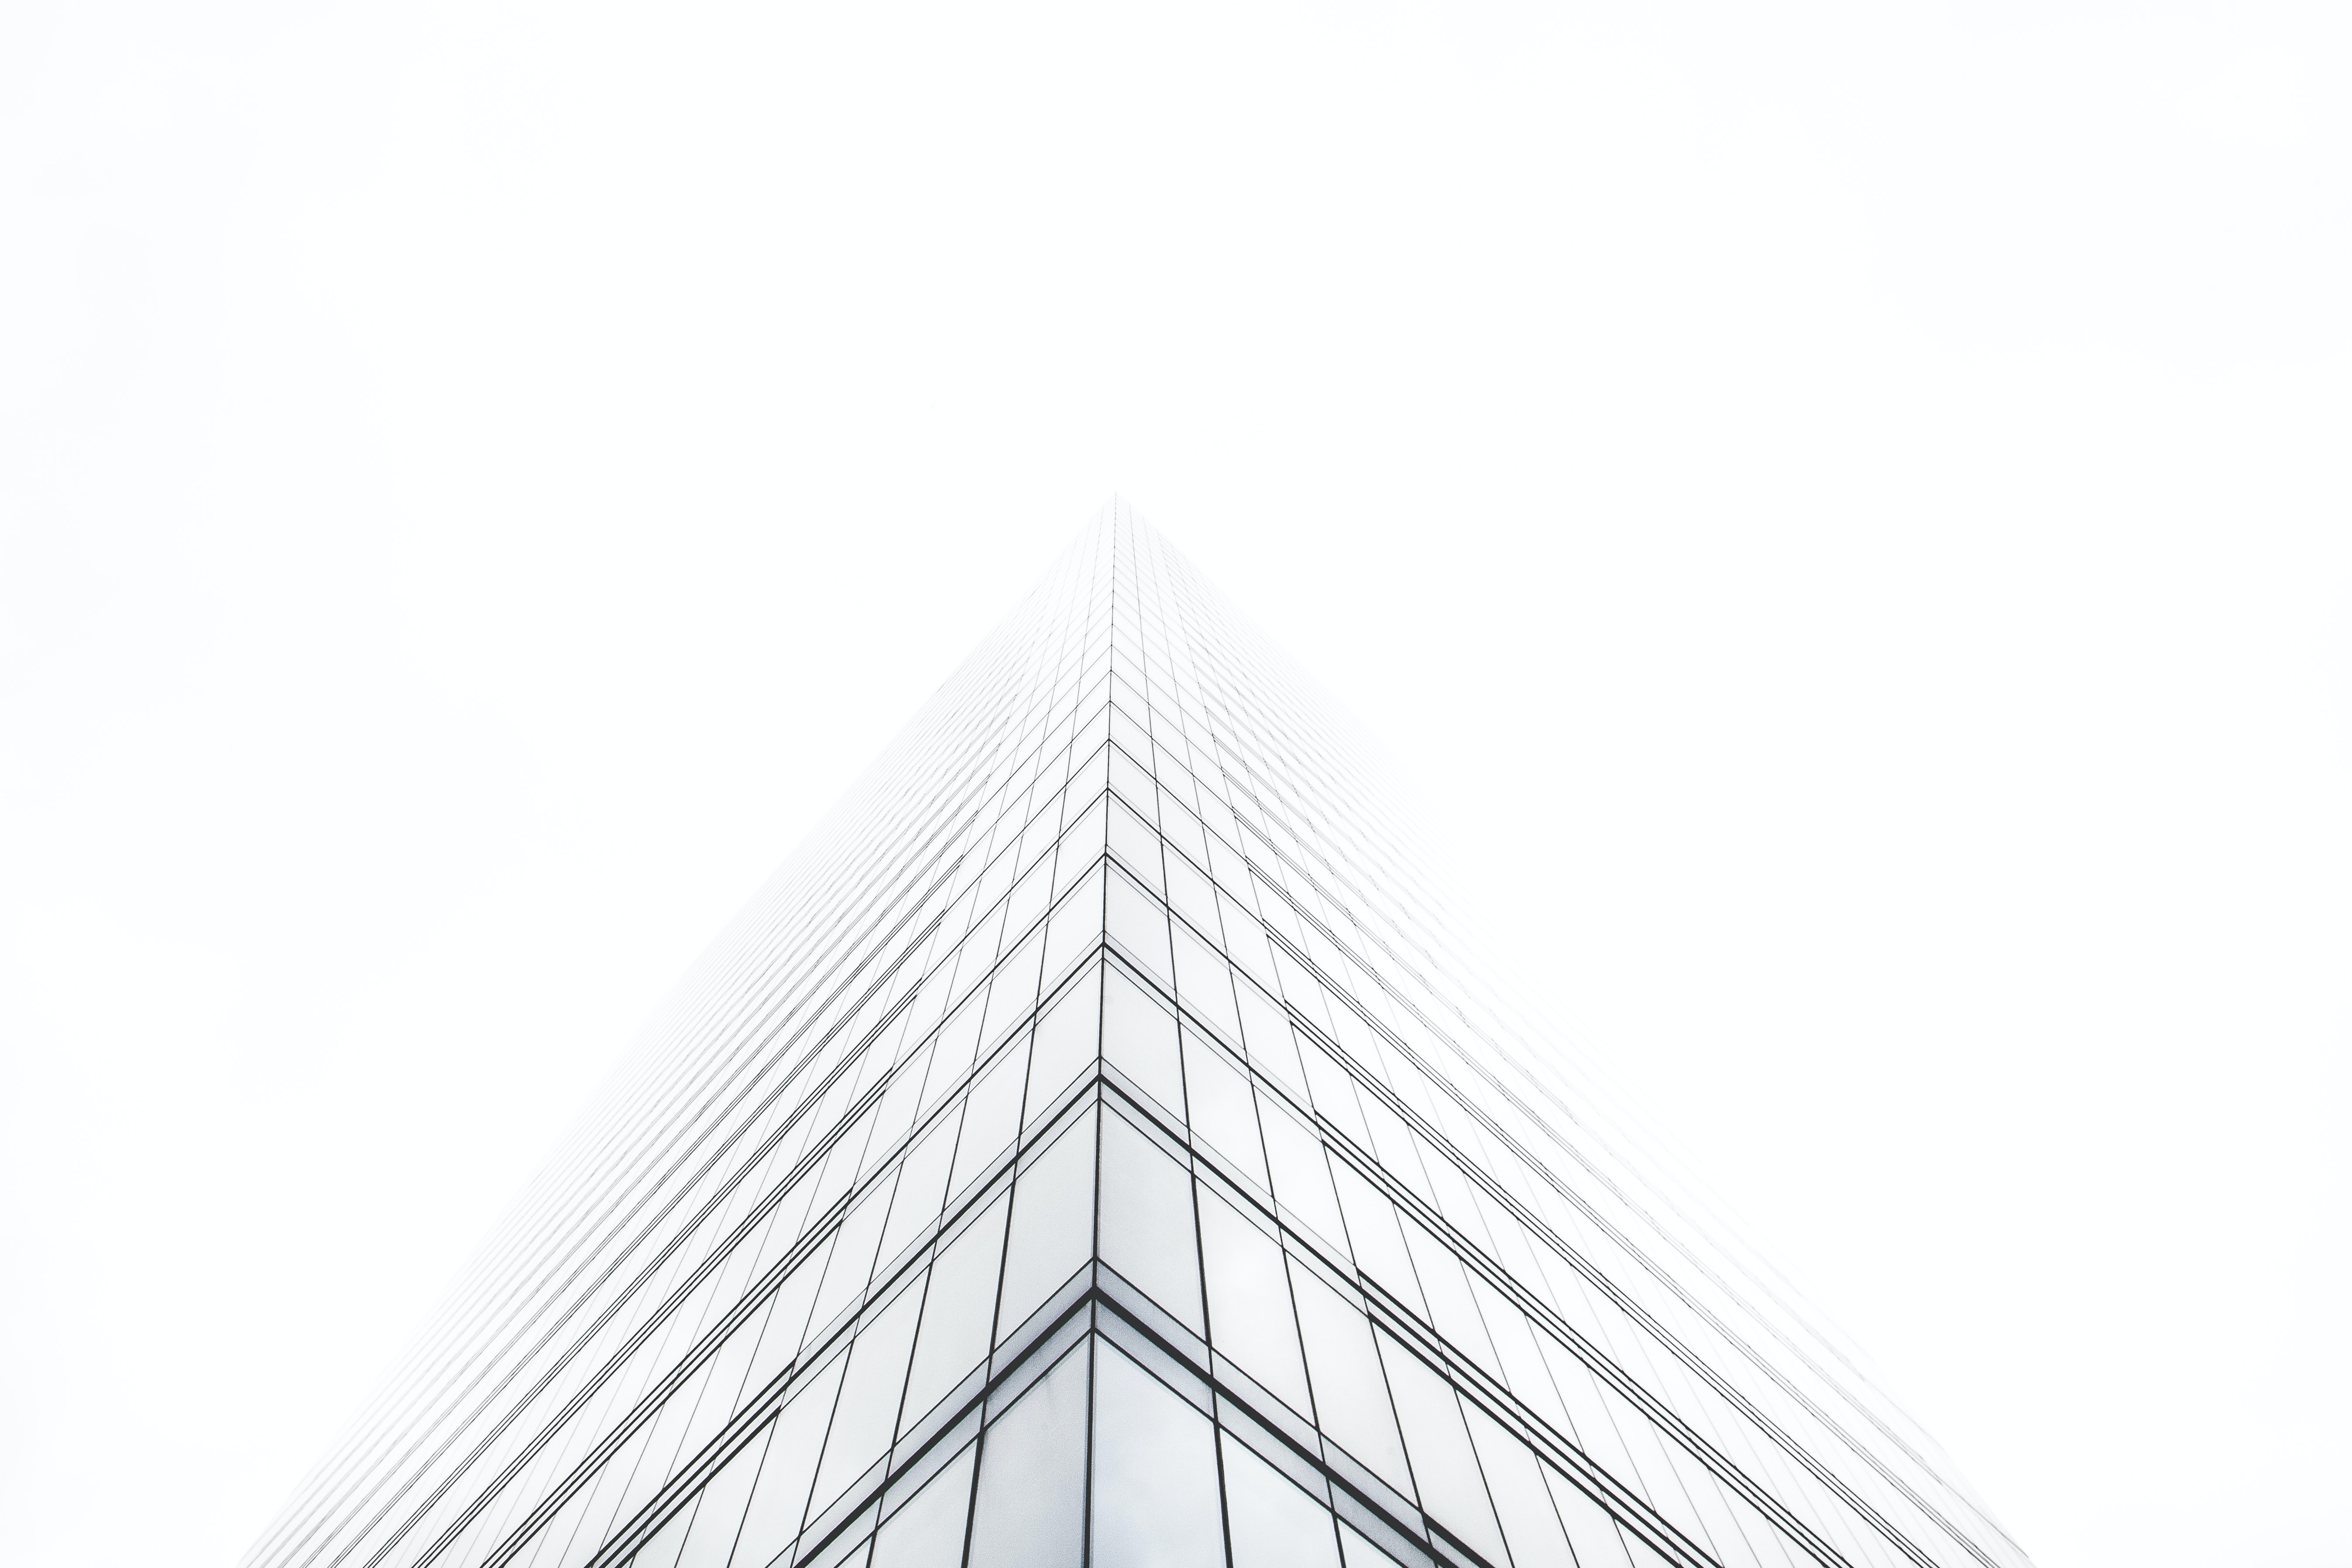 An office building with a glass facade shrouded in fog